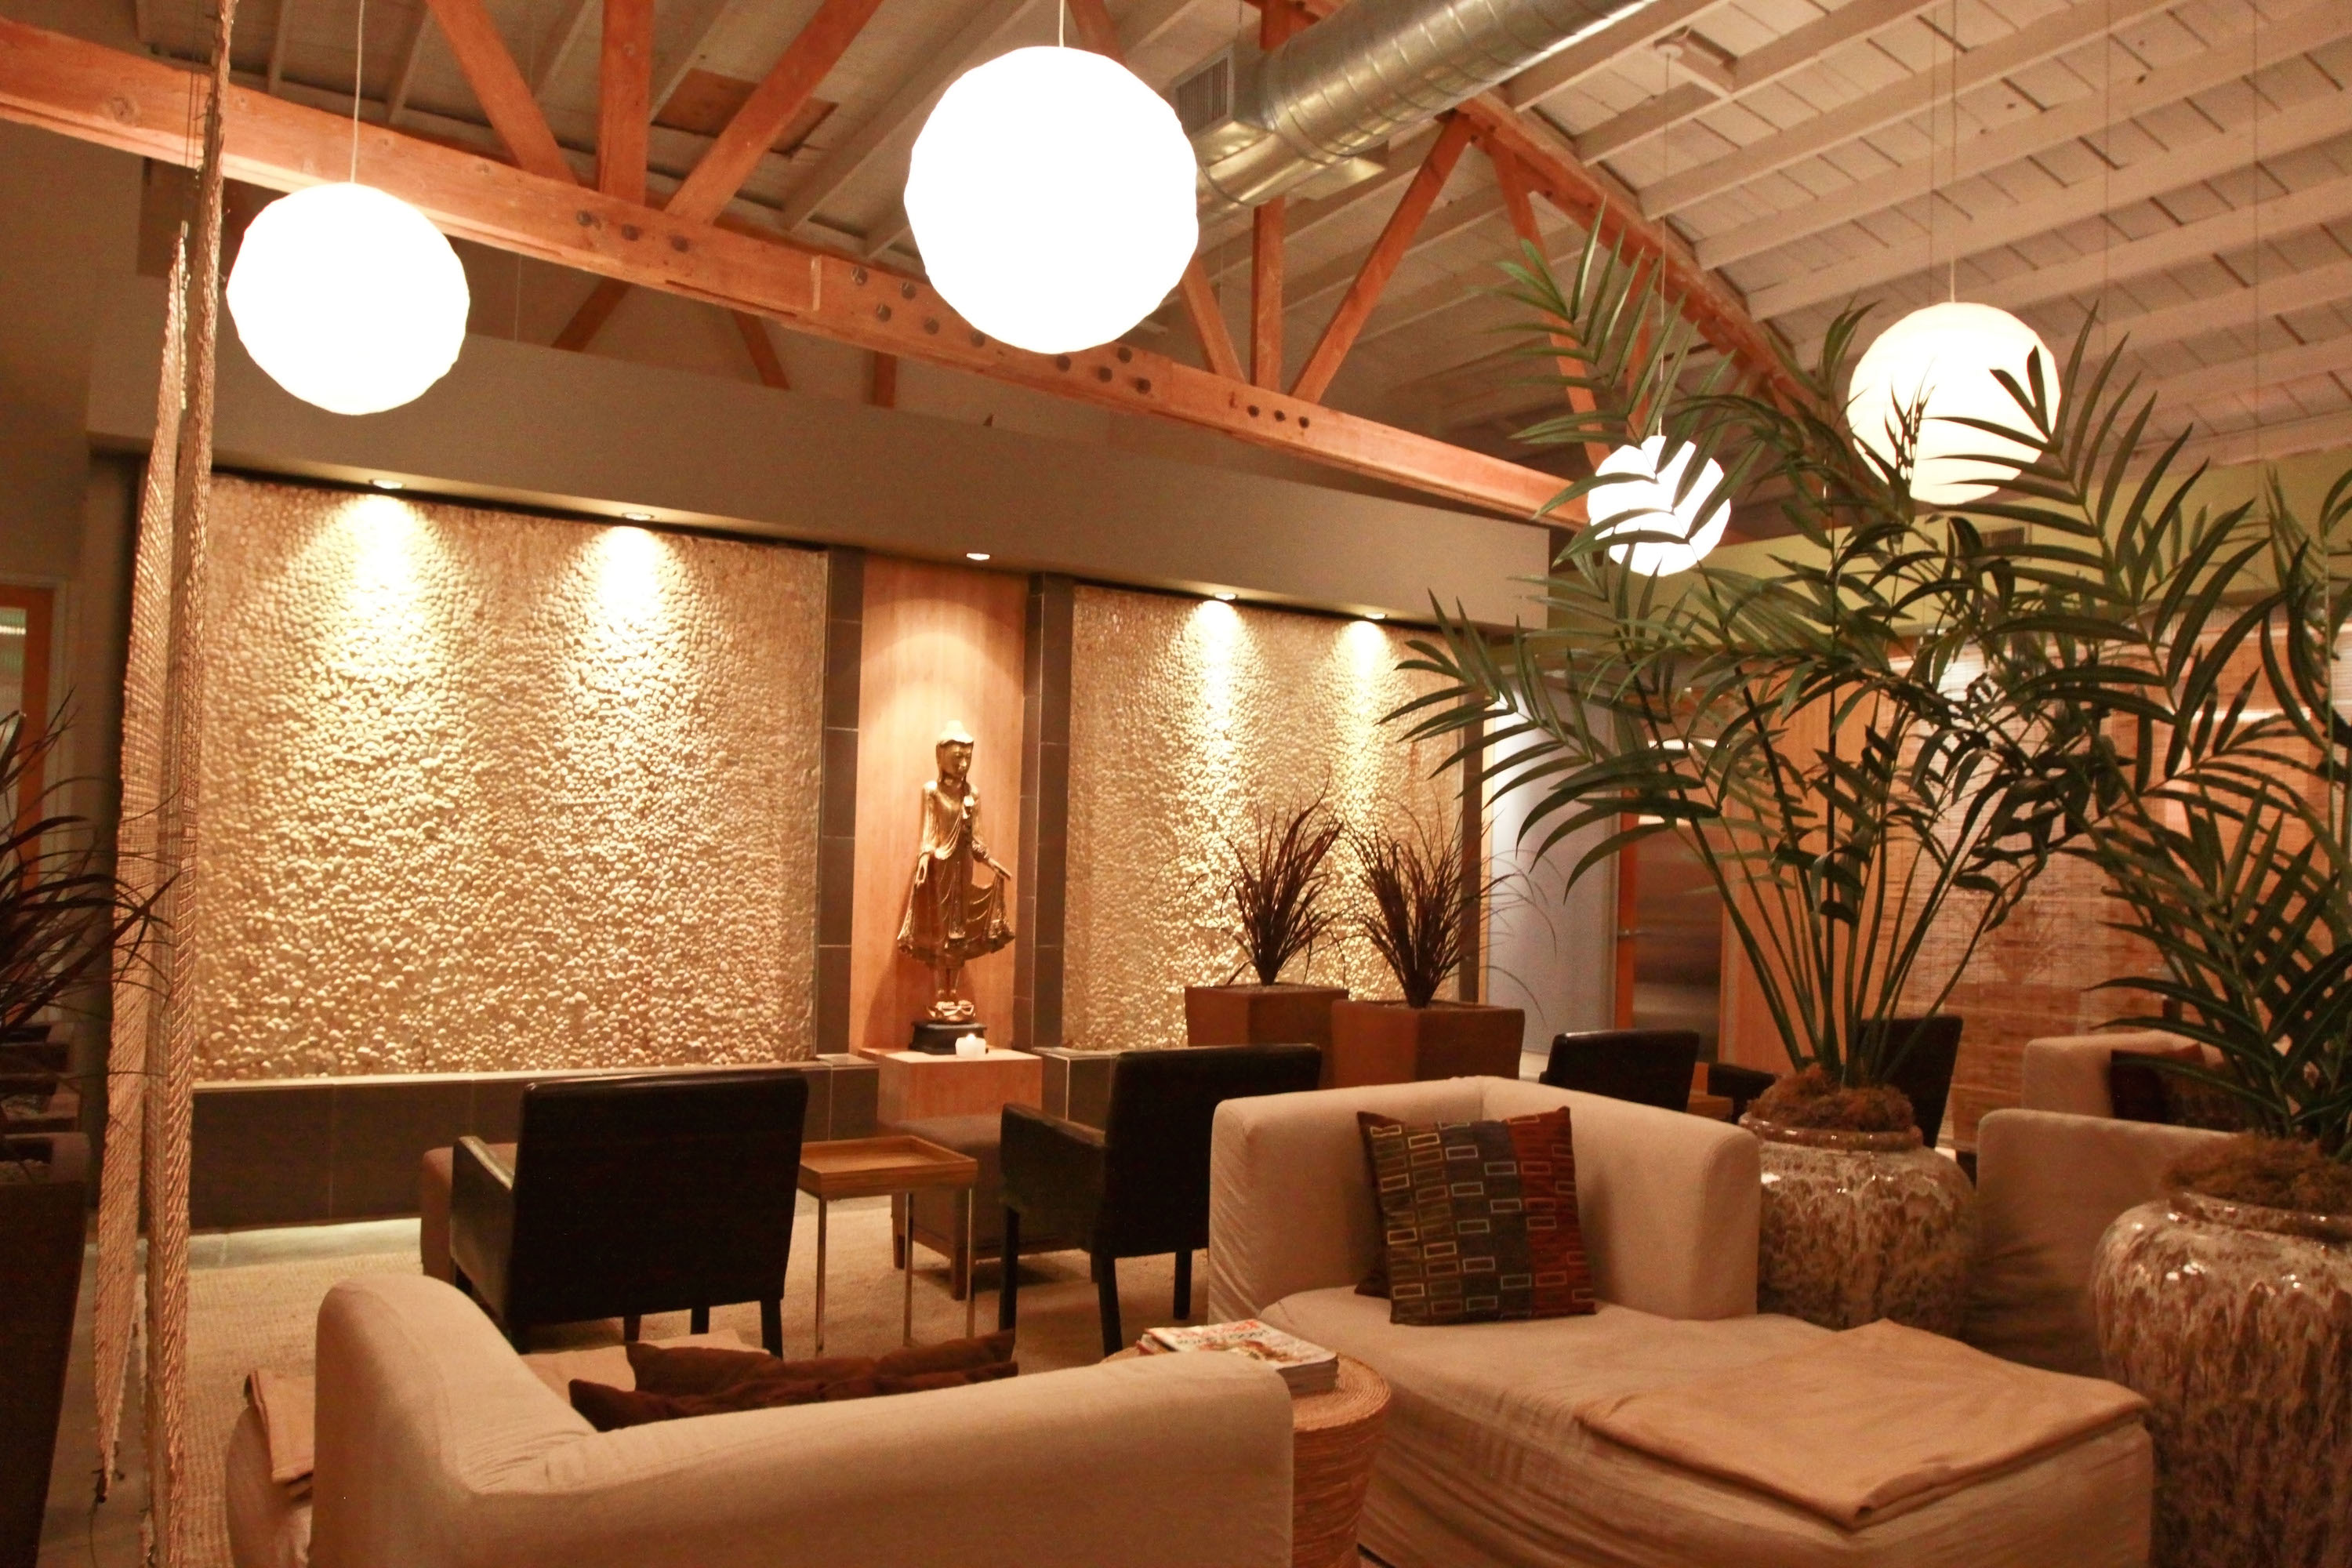 DTox Spa BarrisTourista Southern California Spas